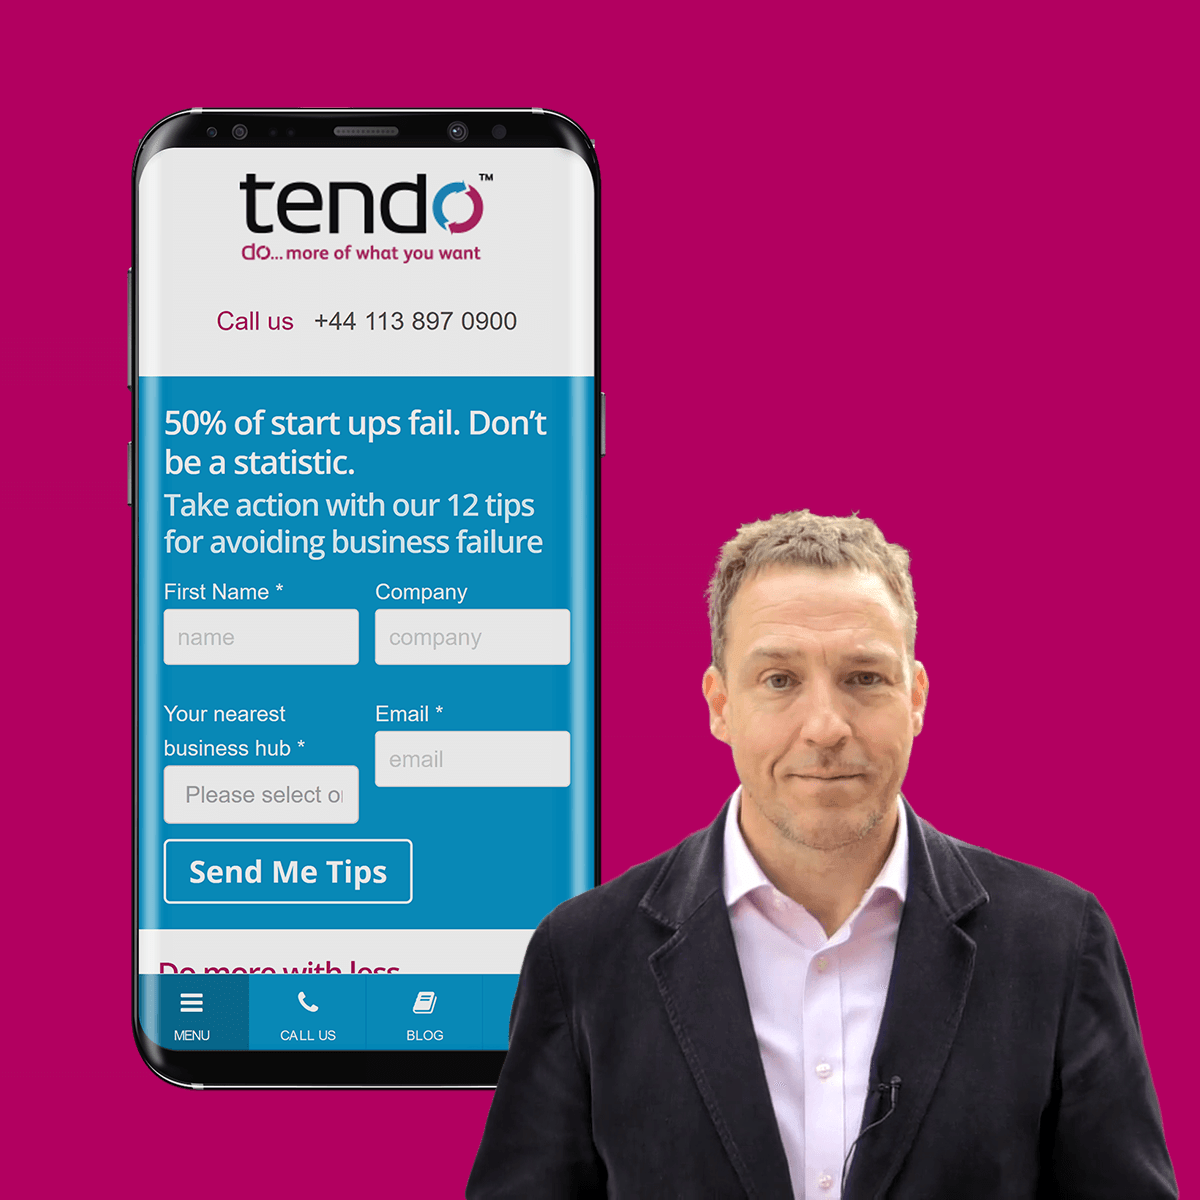 Tendo - Web Design